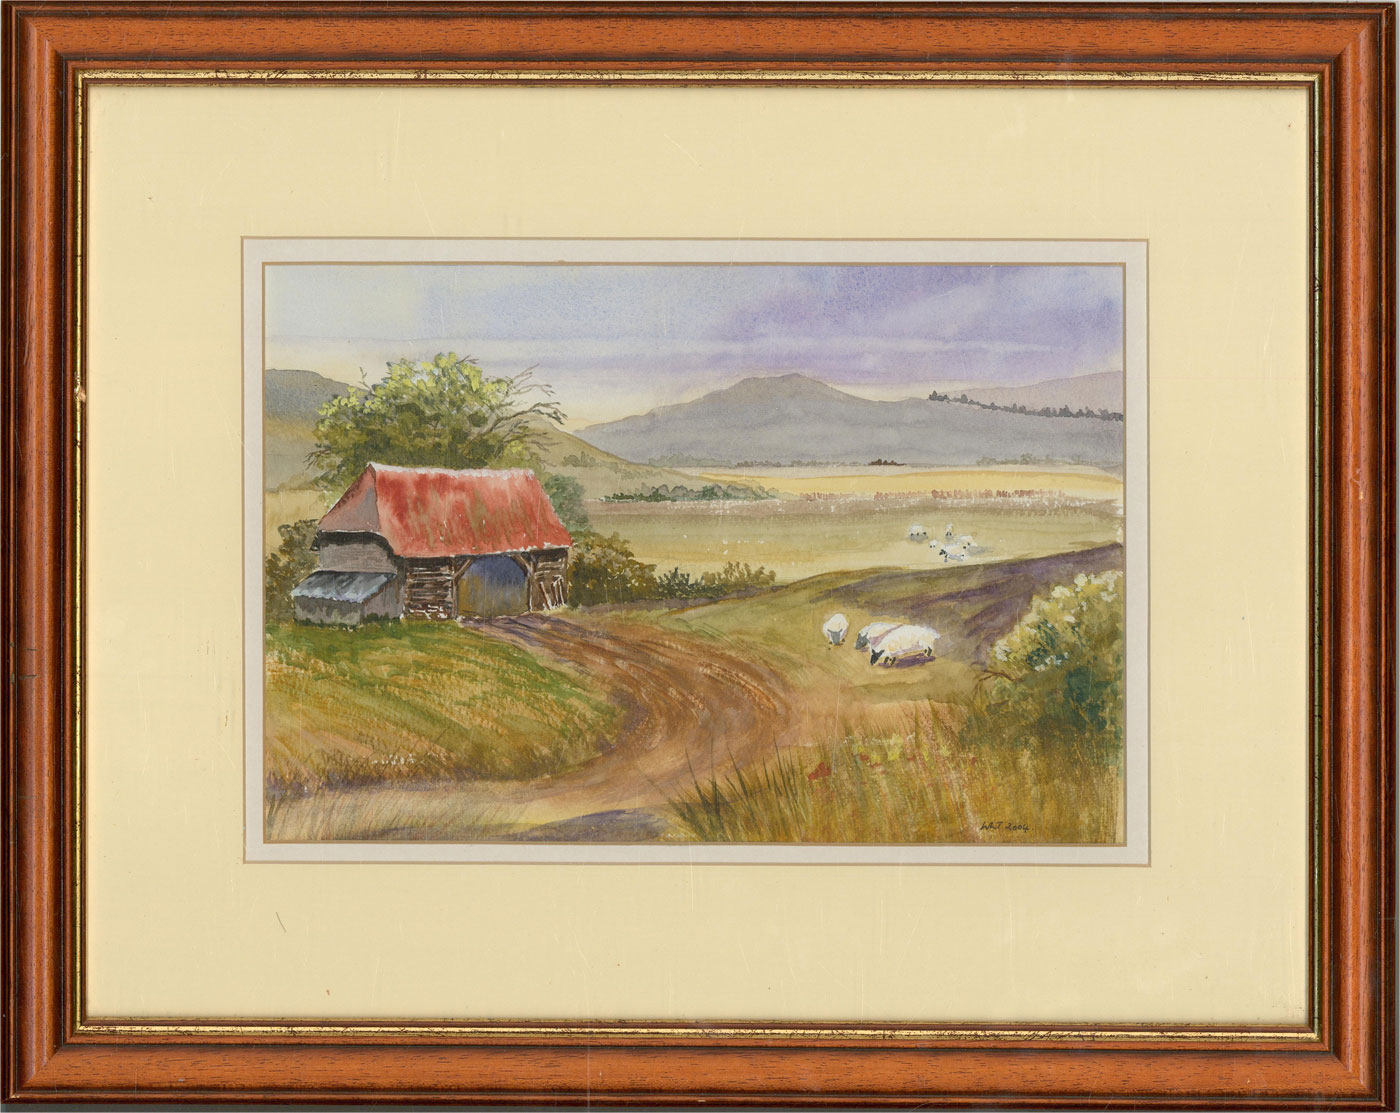 Wendy Thomson - 2004 Watercolour, Harvest Home